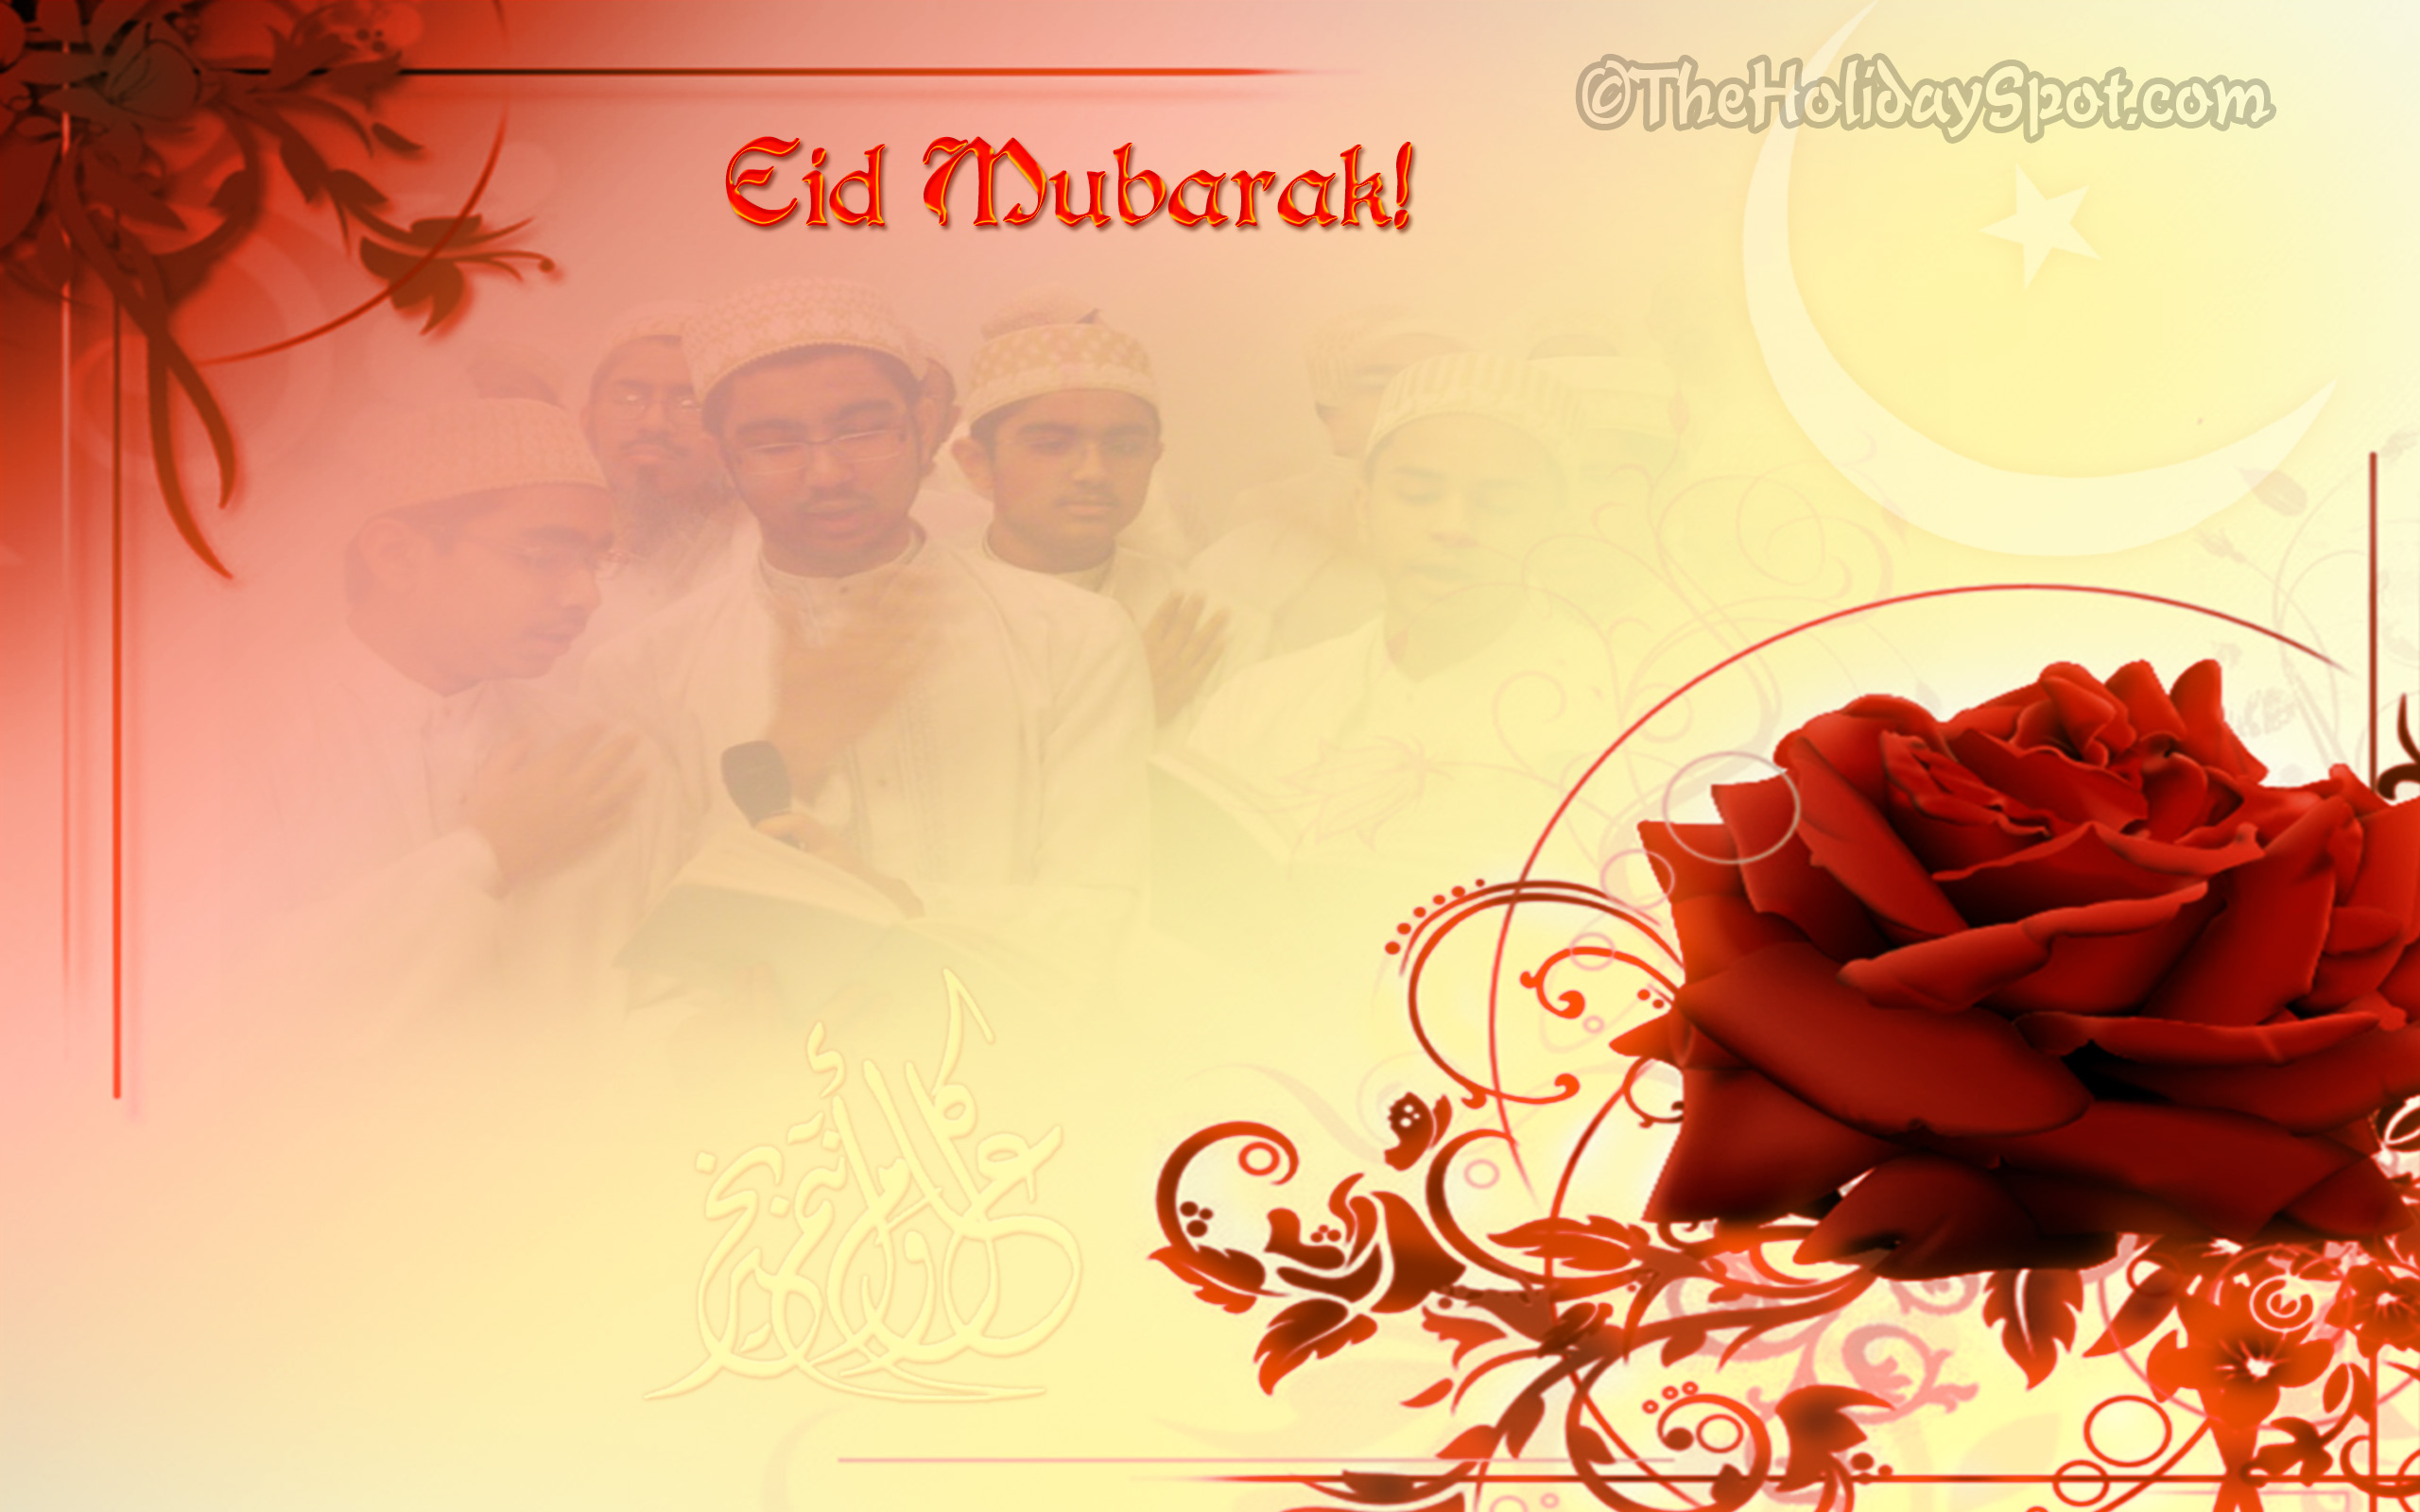 eid ul adha holiday When is eid al-adha in 2016 dates of eid al-adha 2016 from when-iscom, the world's largest holiday database.